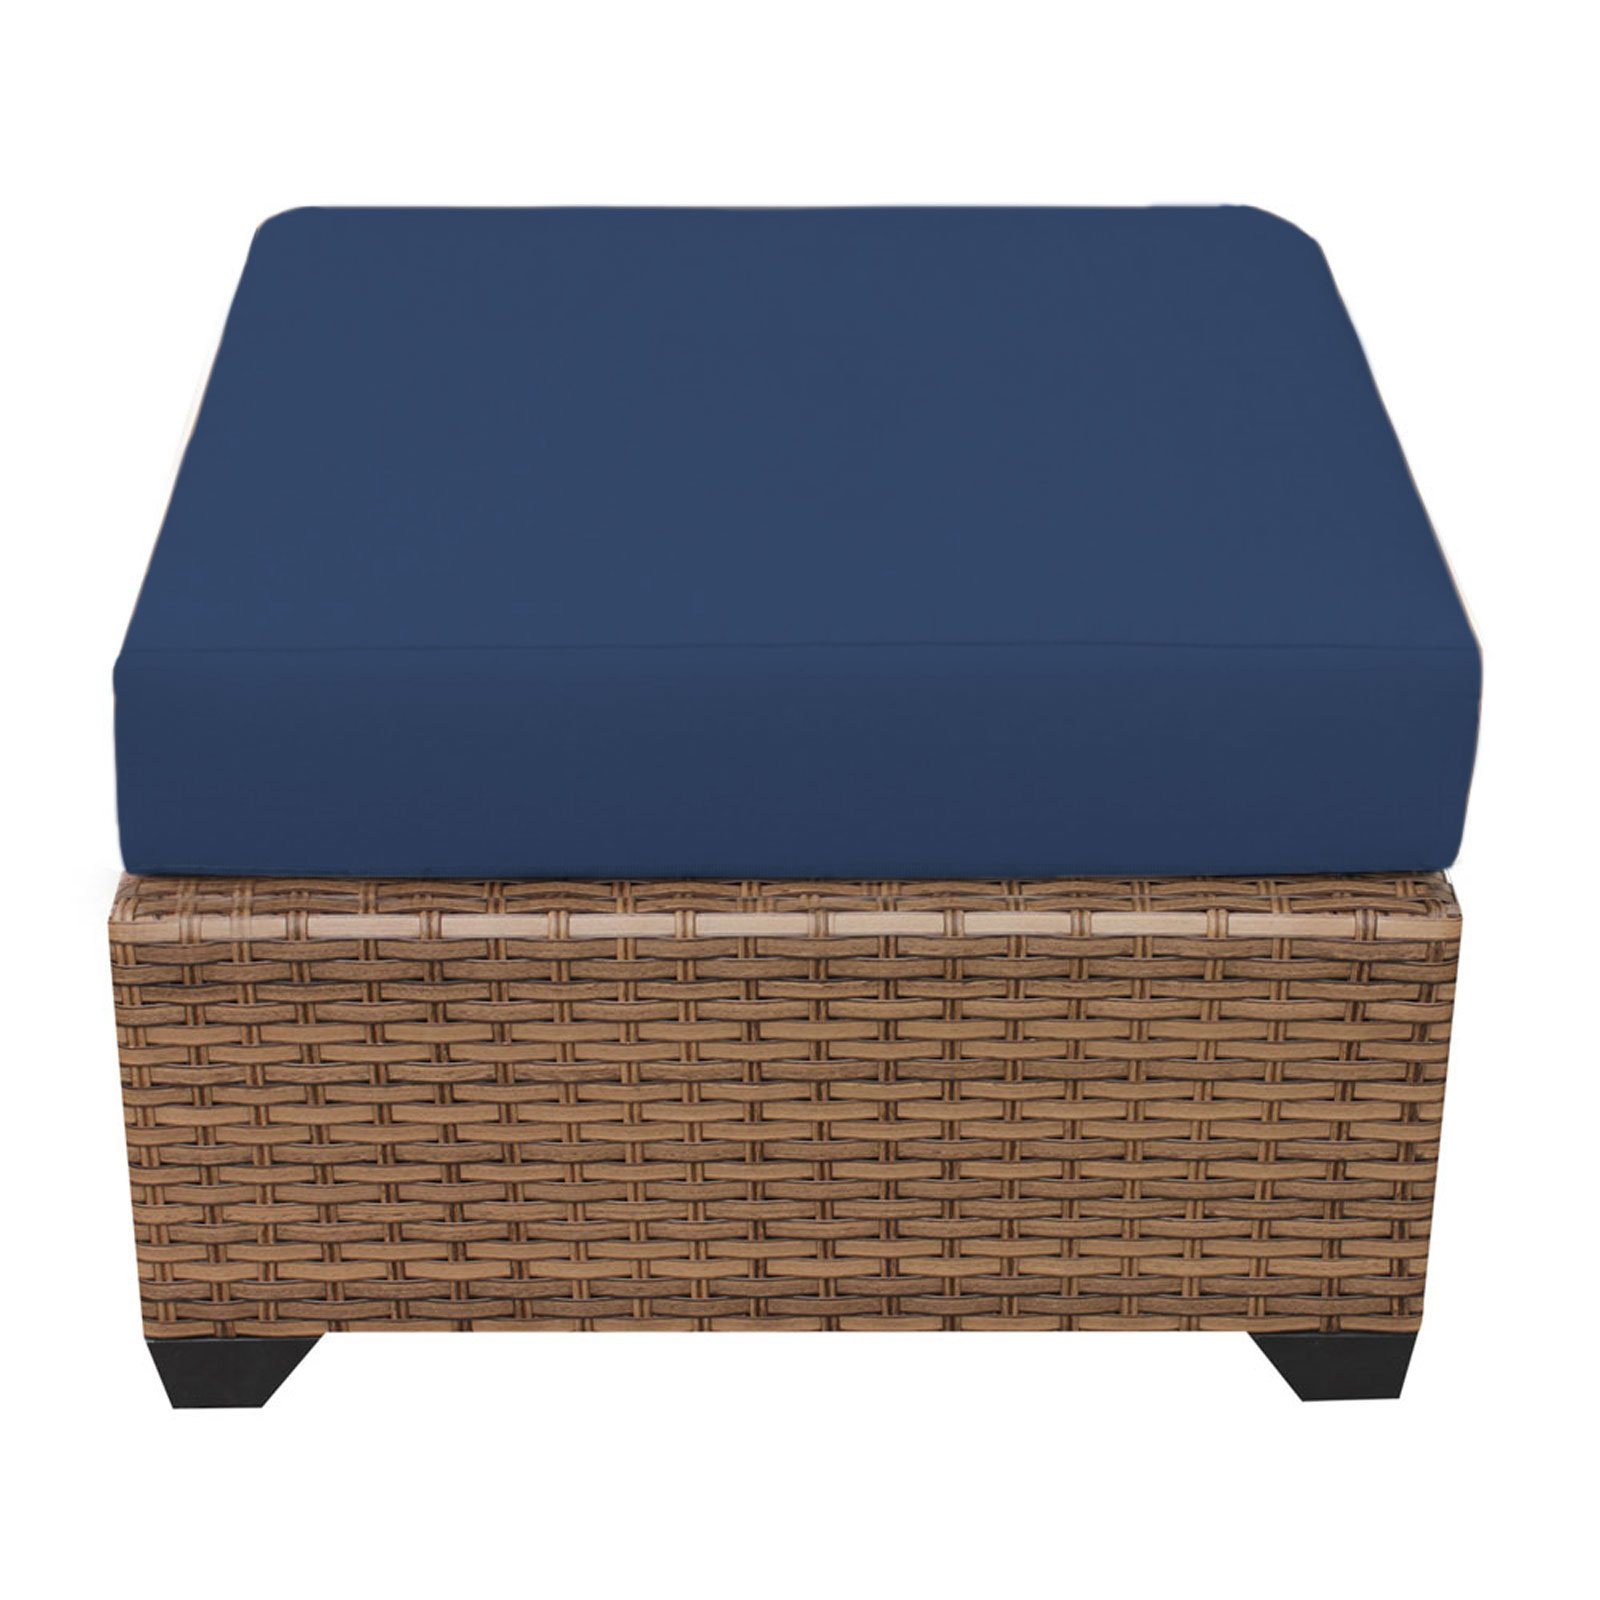 Avadi Outdoor Sofas & Ottomans 3 Piece Set Intended For Fashionable Waterbury Ottoman With Cushion (View 6 of 25)